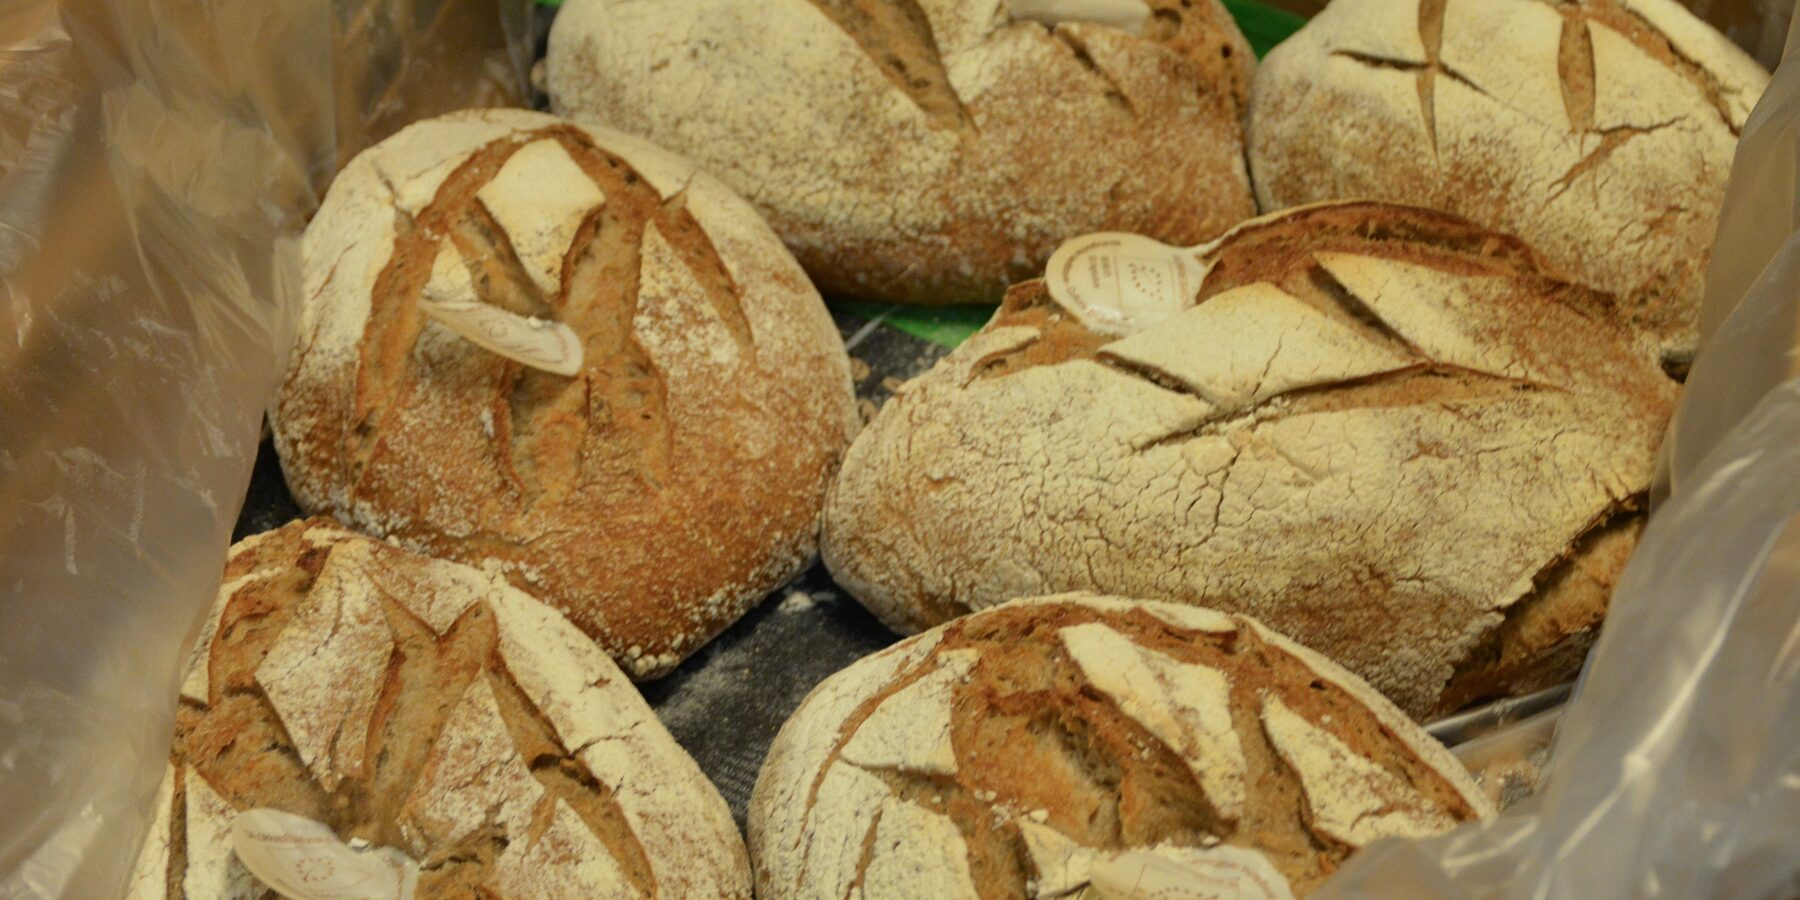 Sourdough baking eliminates the need for yeast and synthetic preservatives.